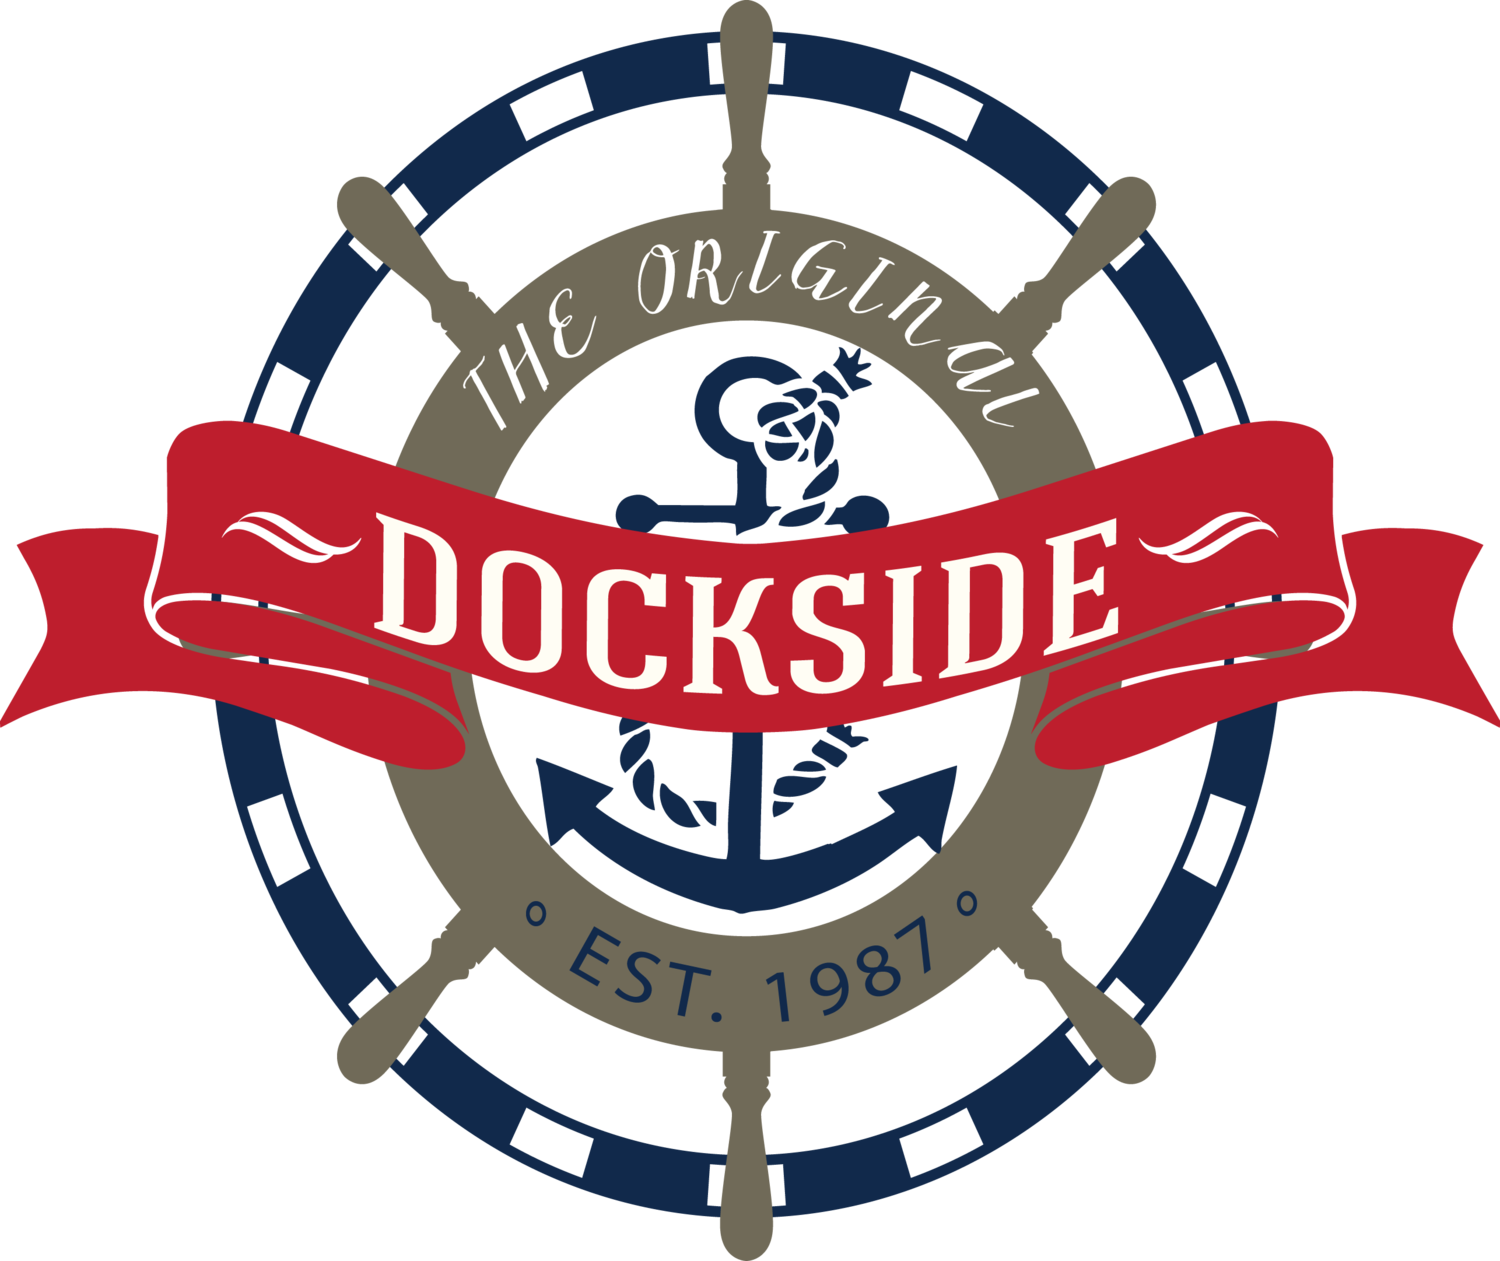 Dockside Seafood & Specialties